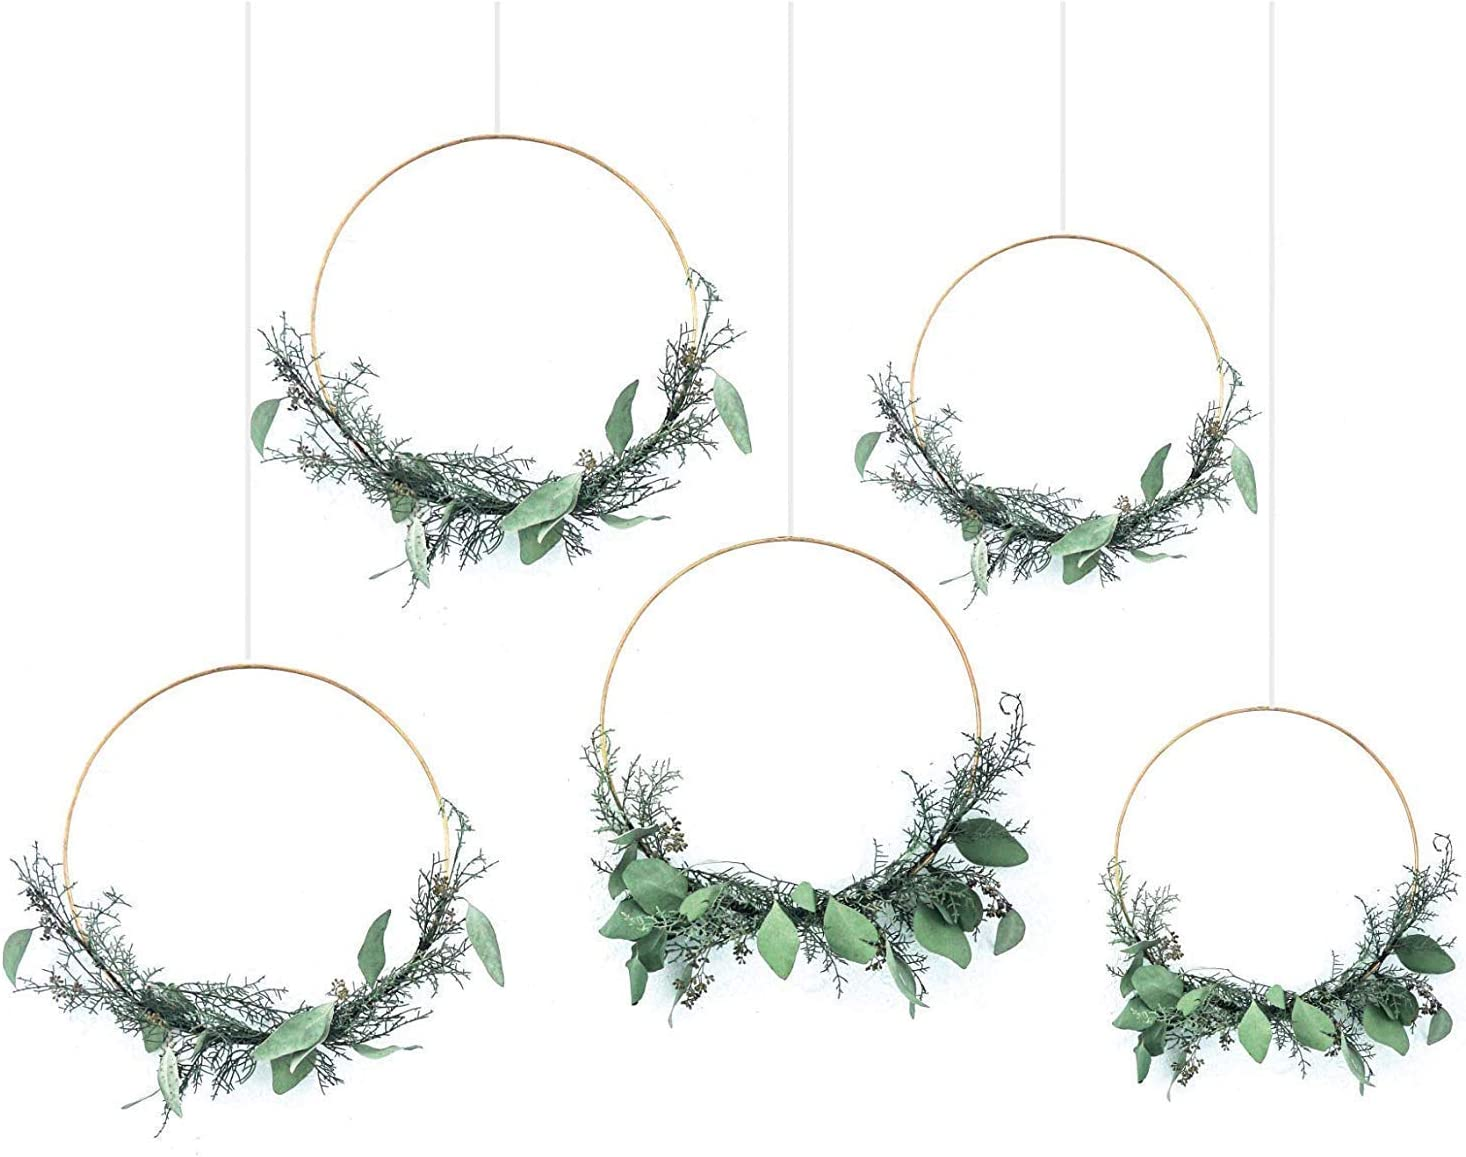 Fasdu 6pcs 14 inch Large Metal Floral Hoop Wreath Macrame Gold Hoop Rings for Making Wedding Wreath Decor and DIY Dream Catcher Crafts